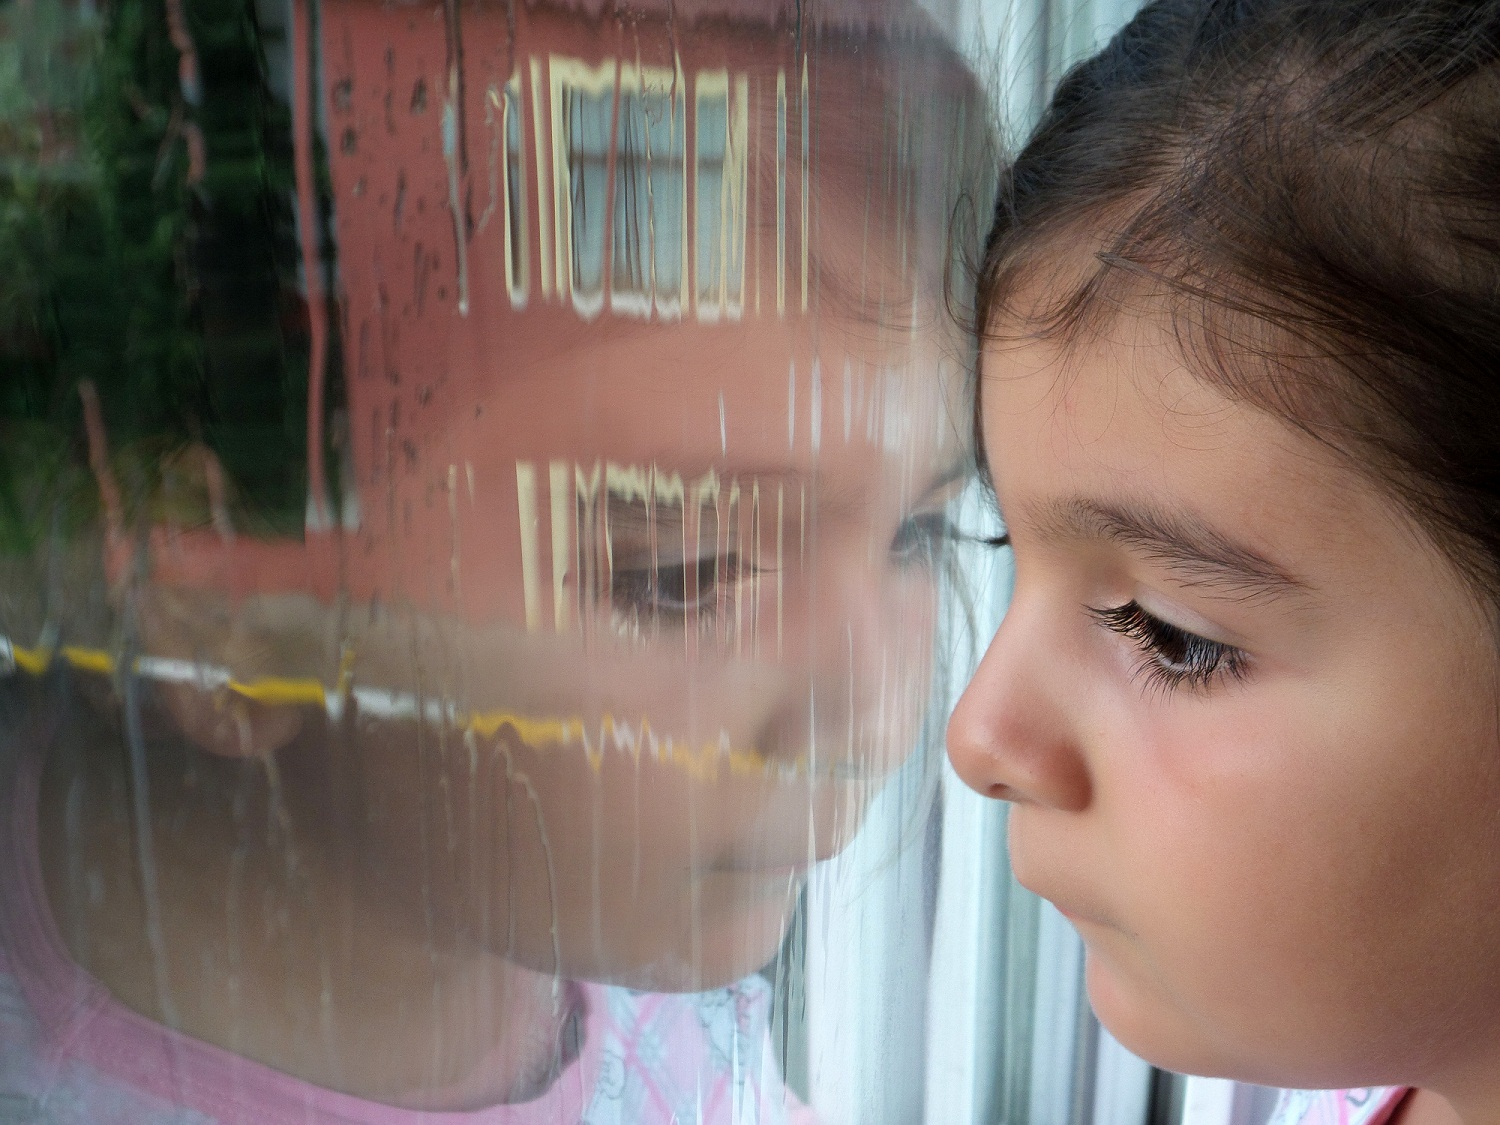 Child looking out window